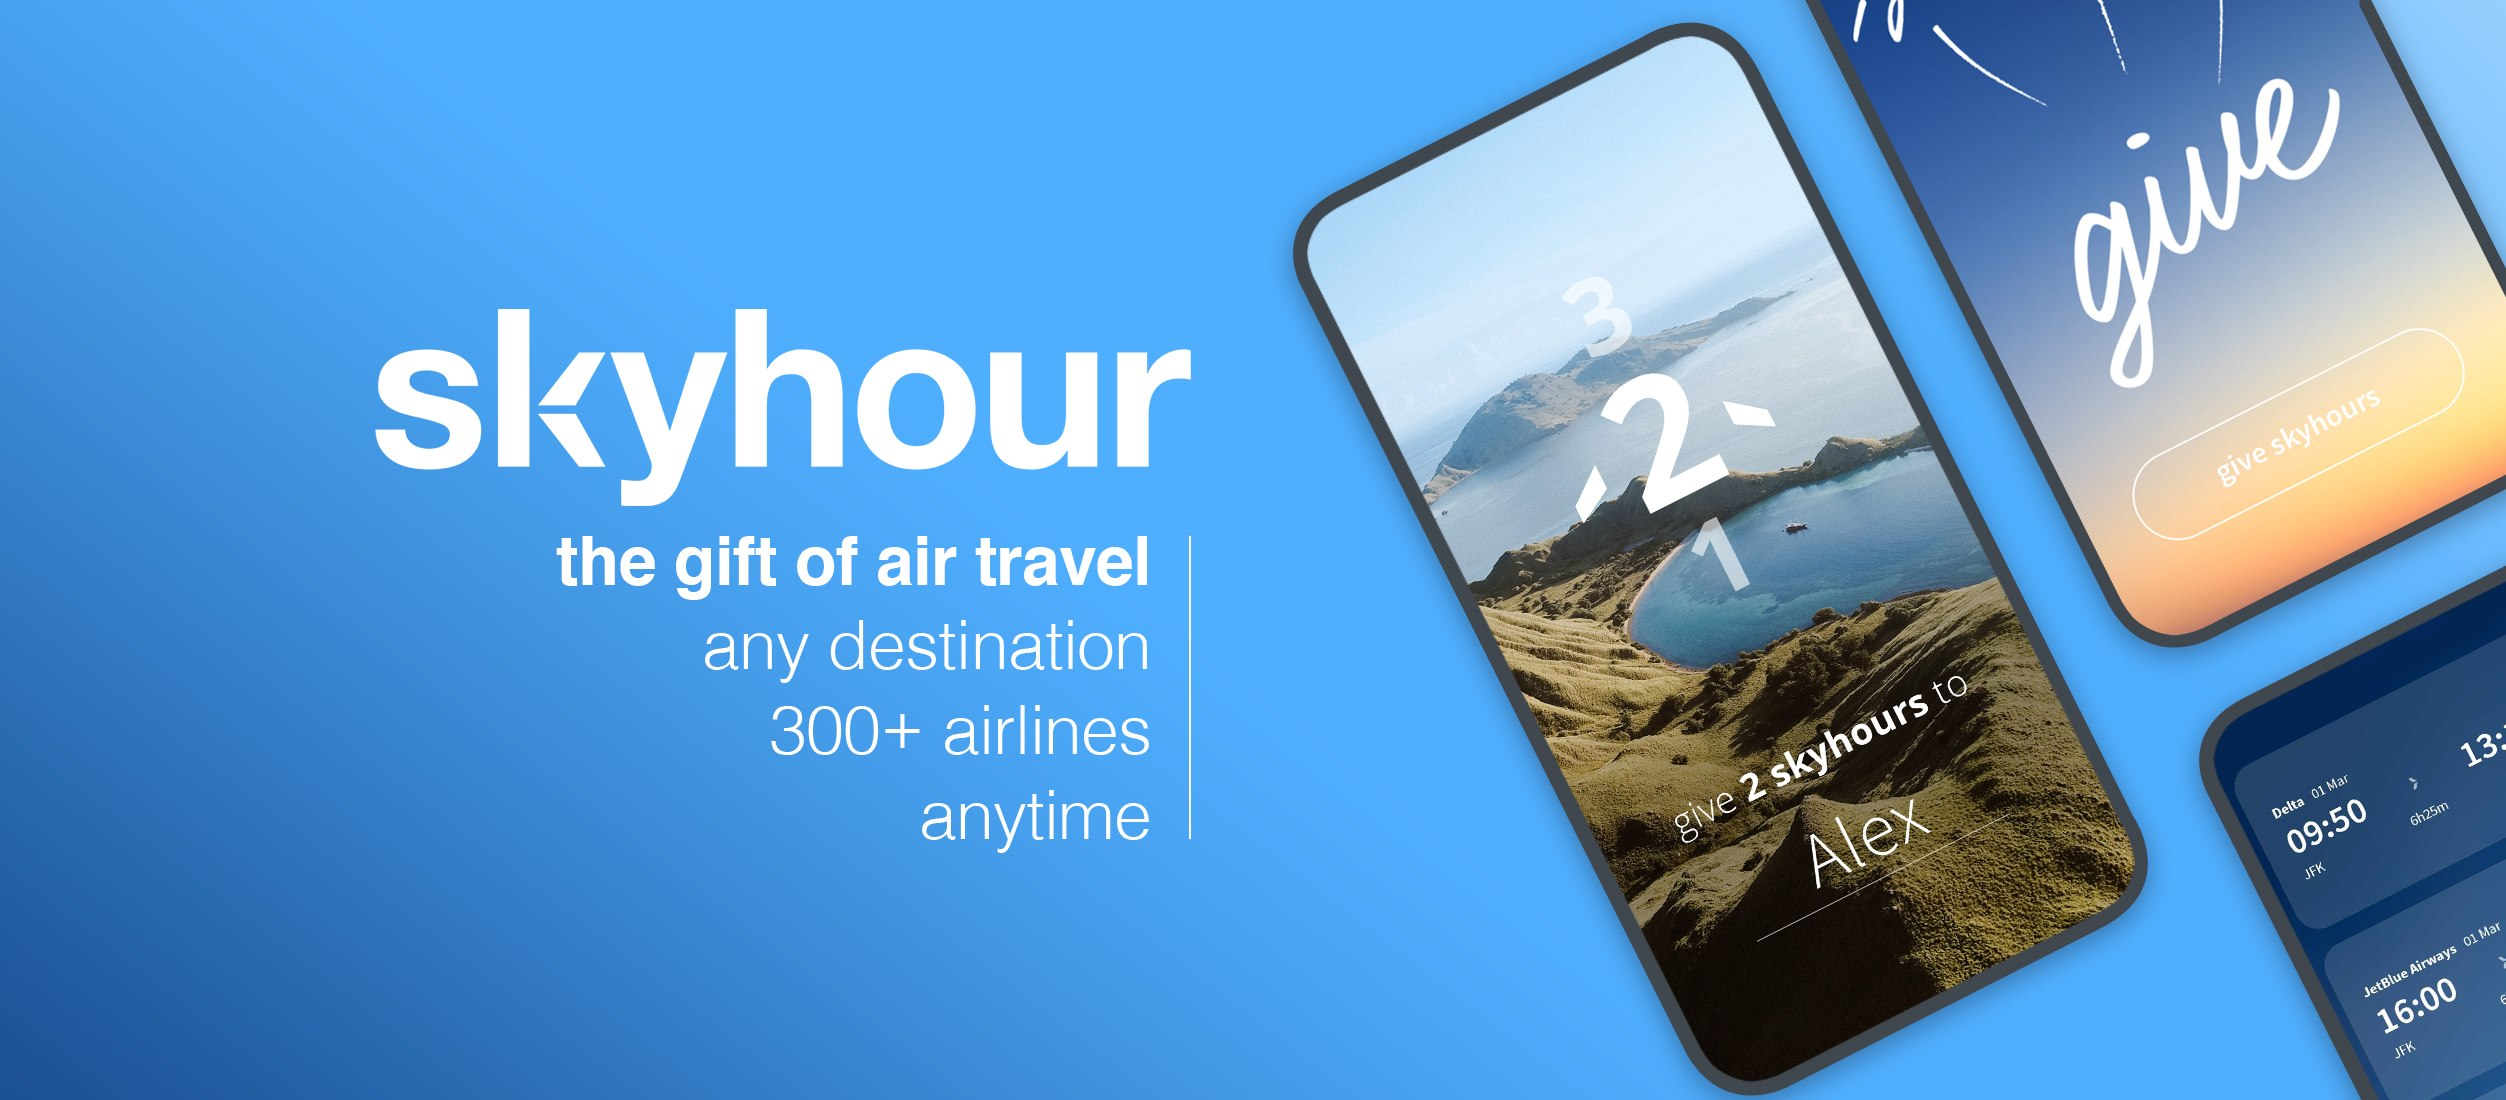 Skyhours 9 Gift Ideas for The Grad in Your Life